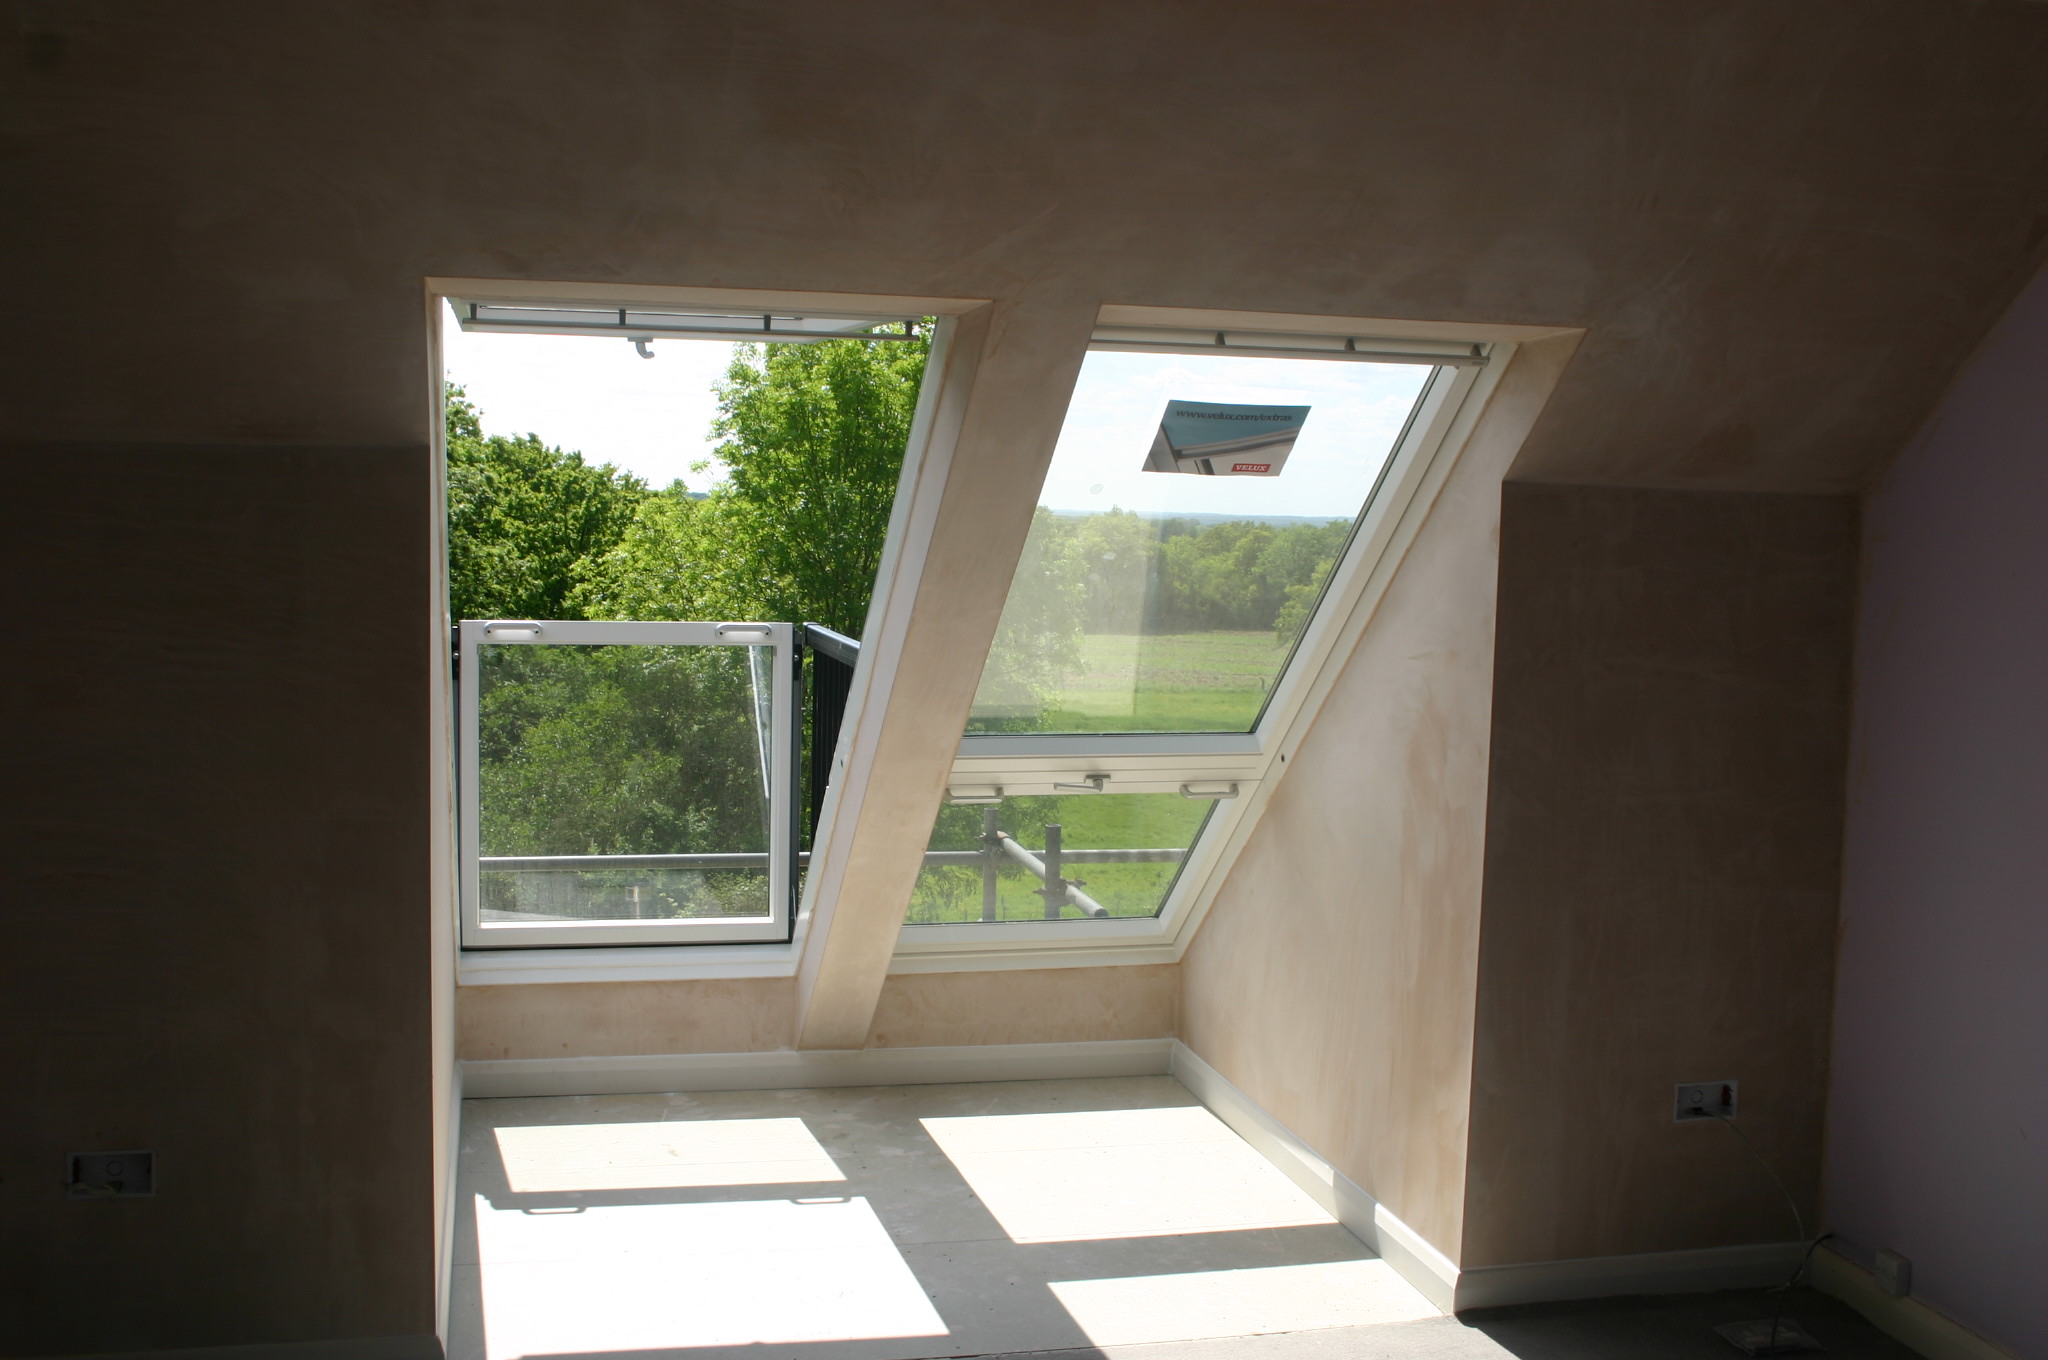 www.RoofWindows.me.uk